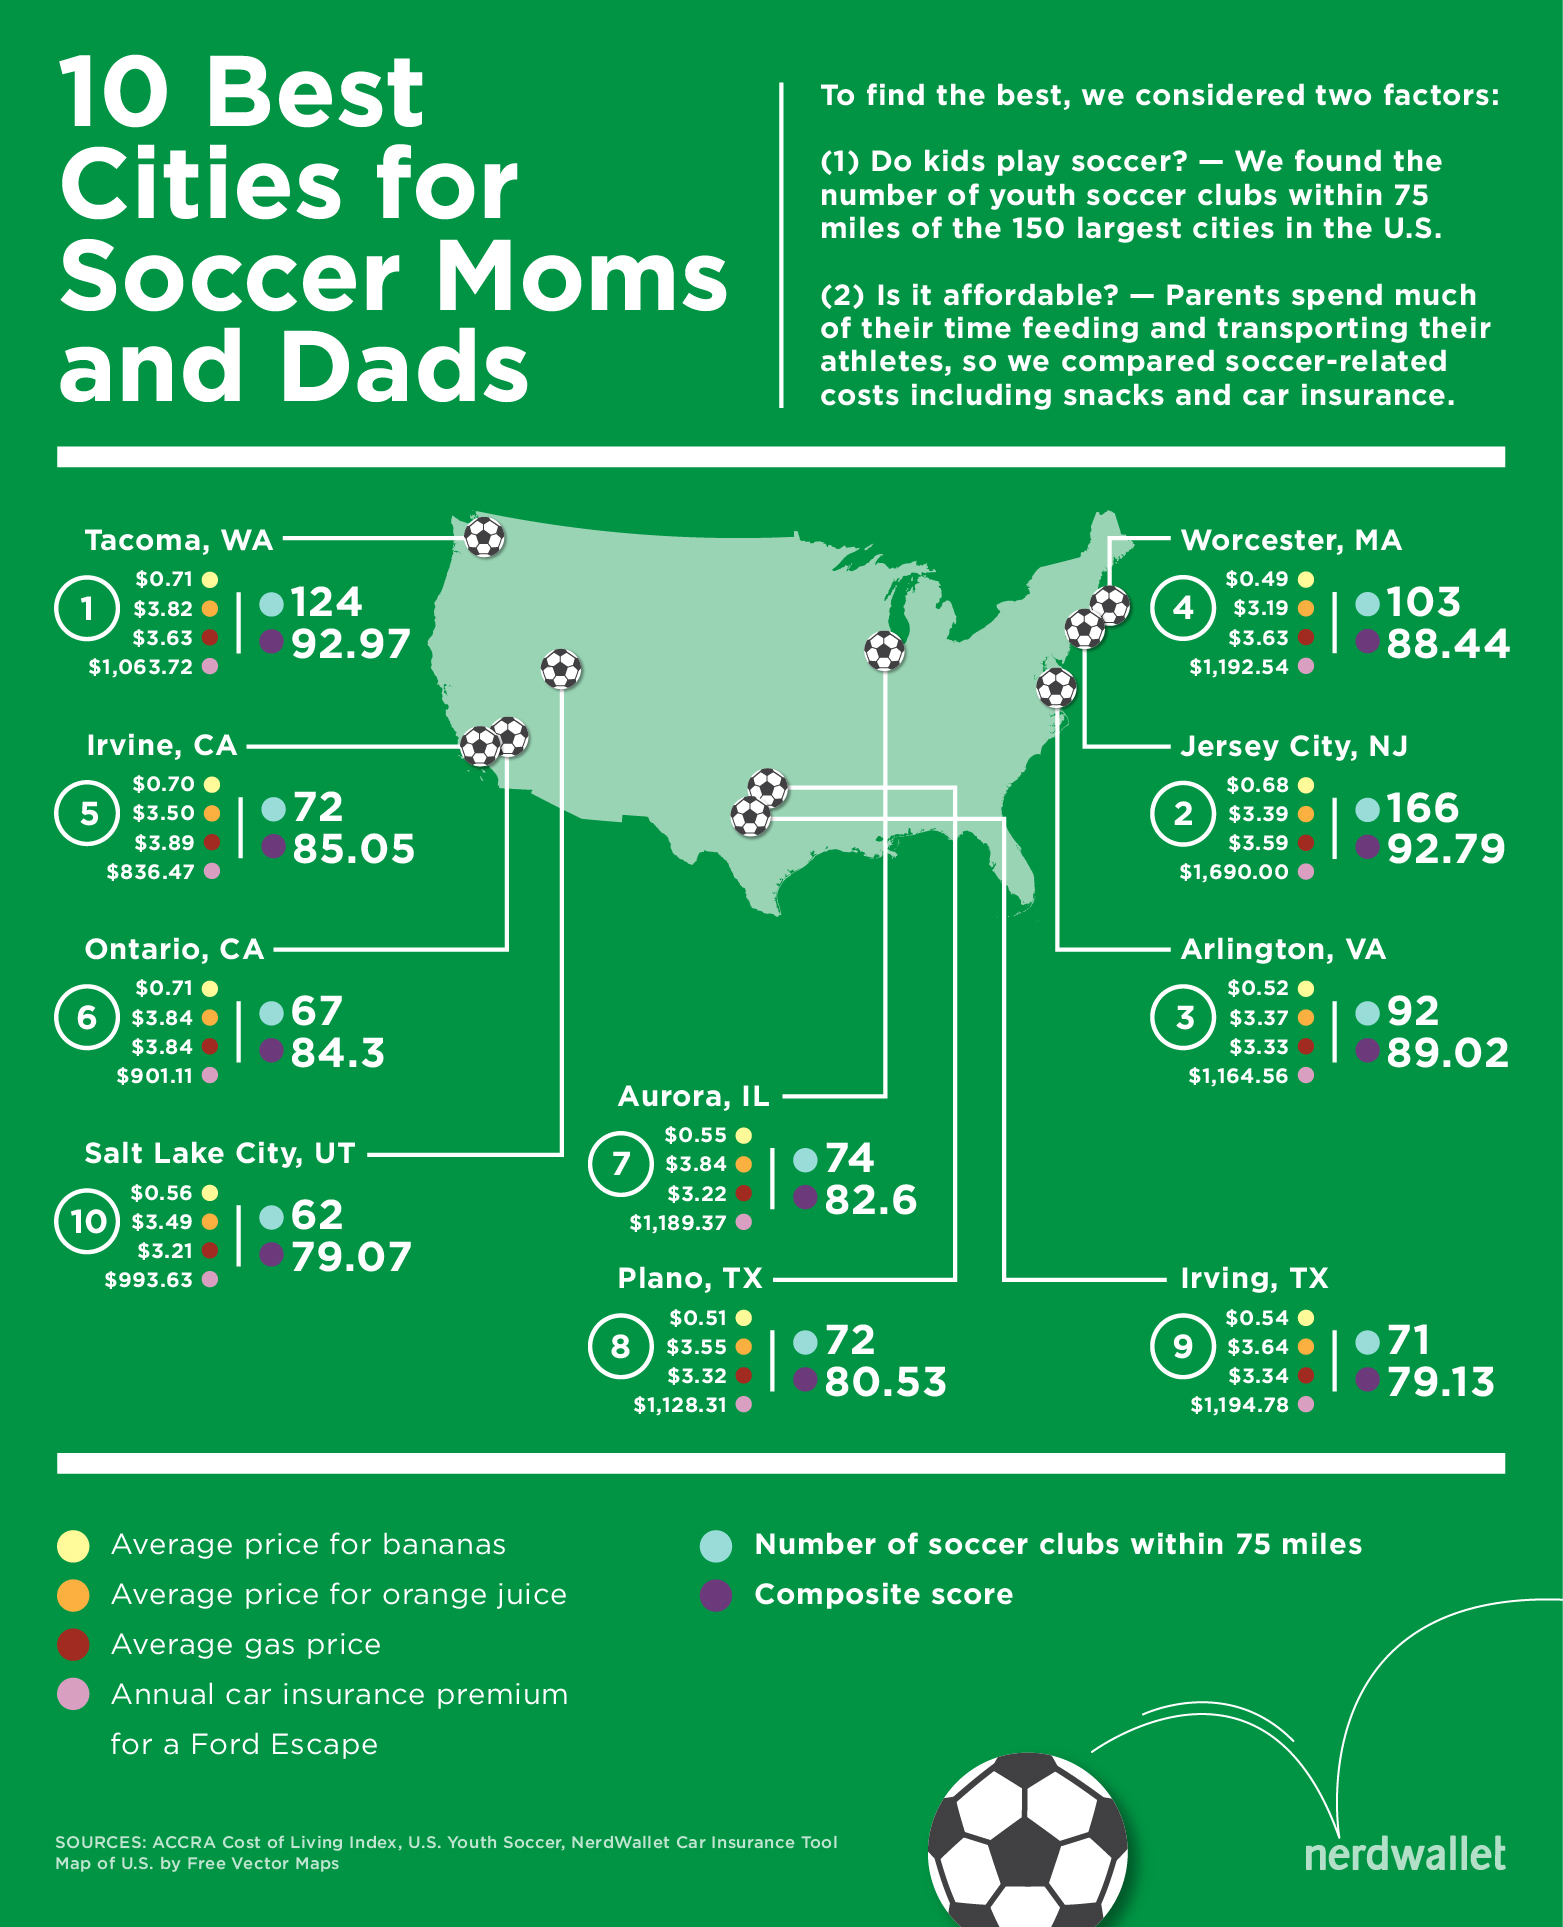 Best Cities for Soccer Moms and Dads